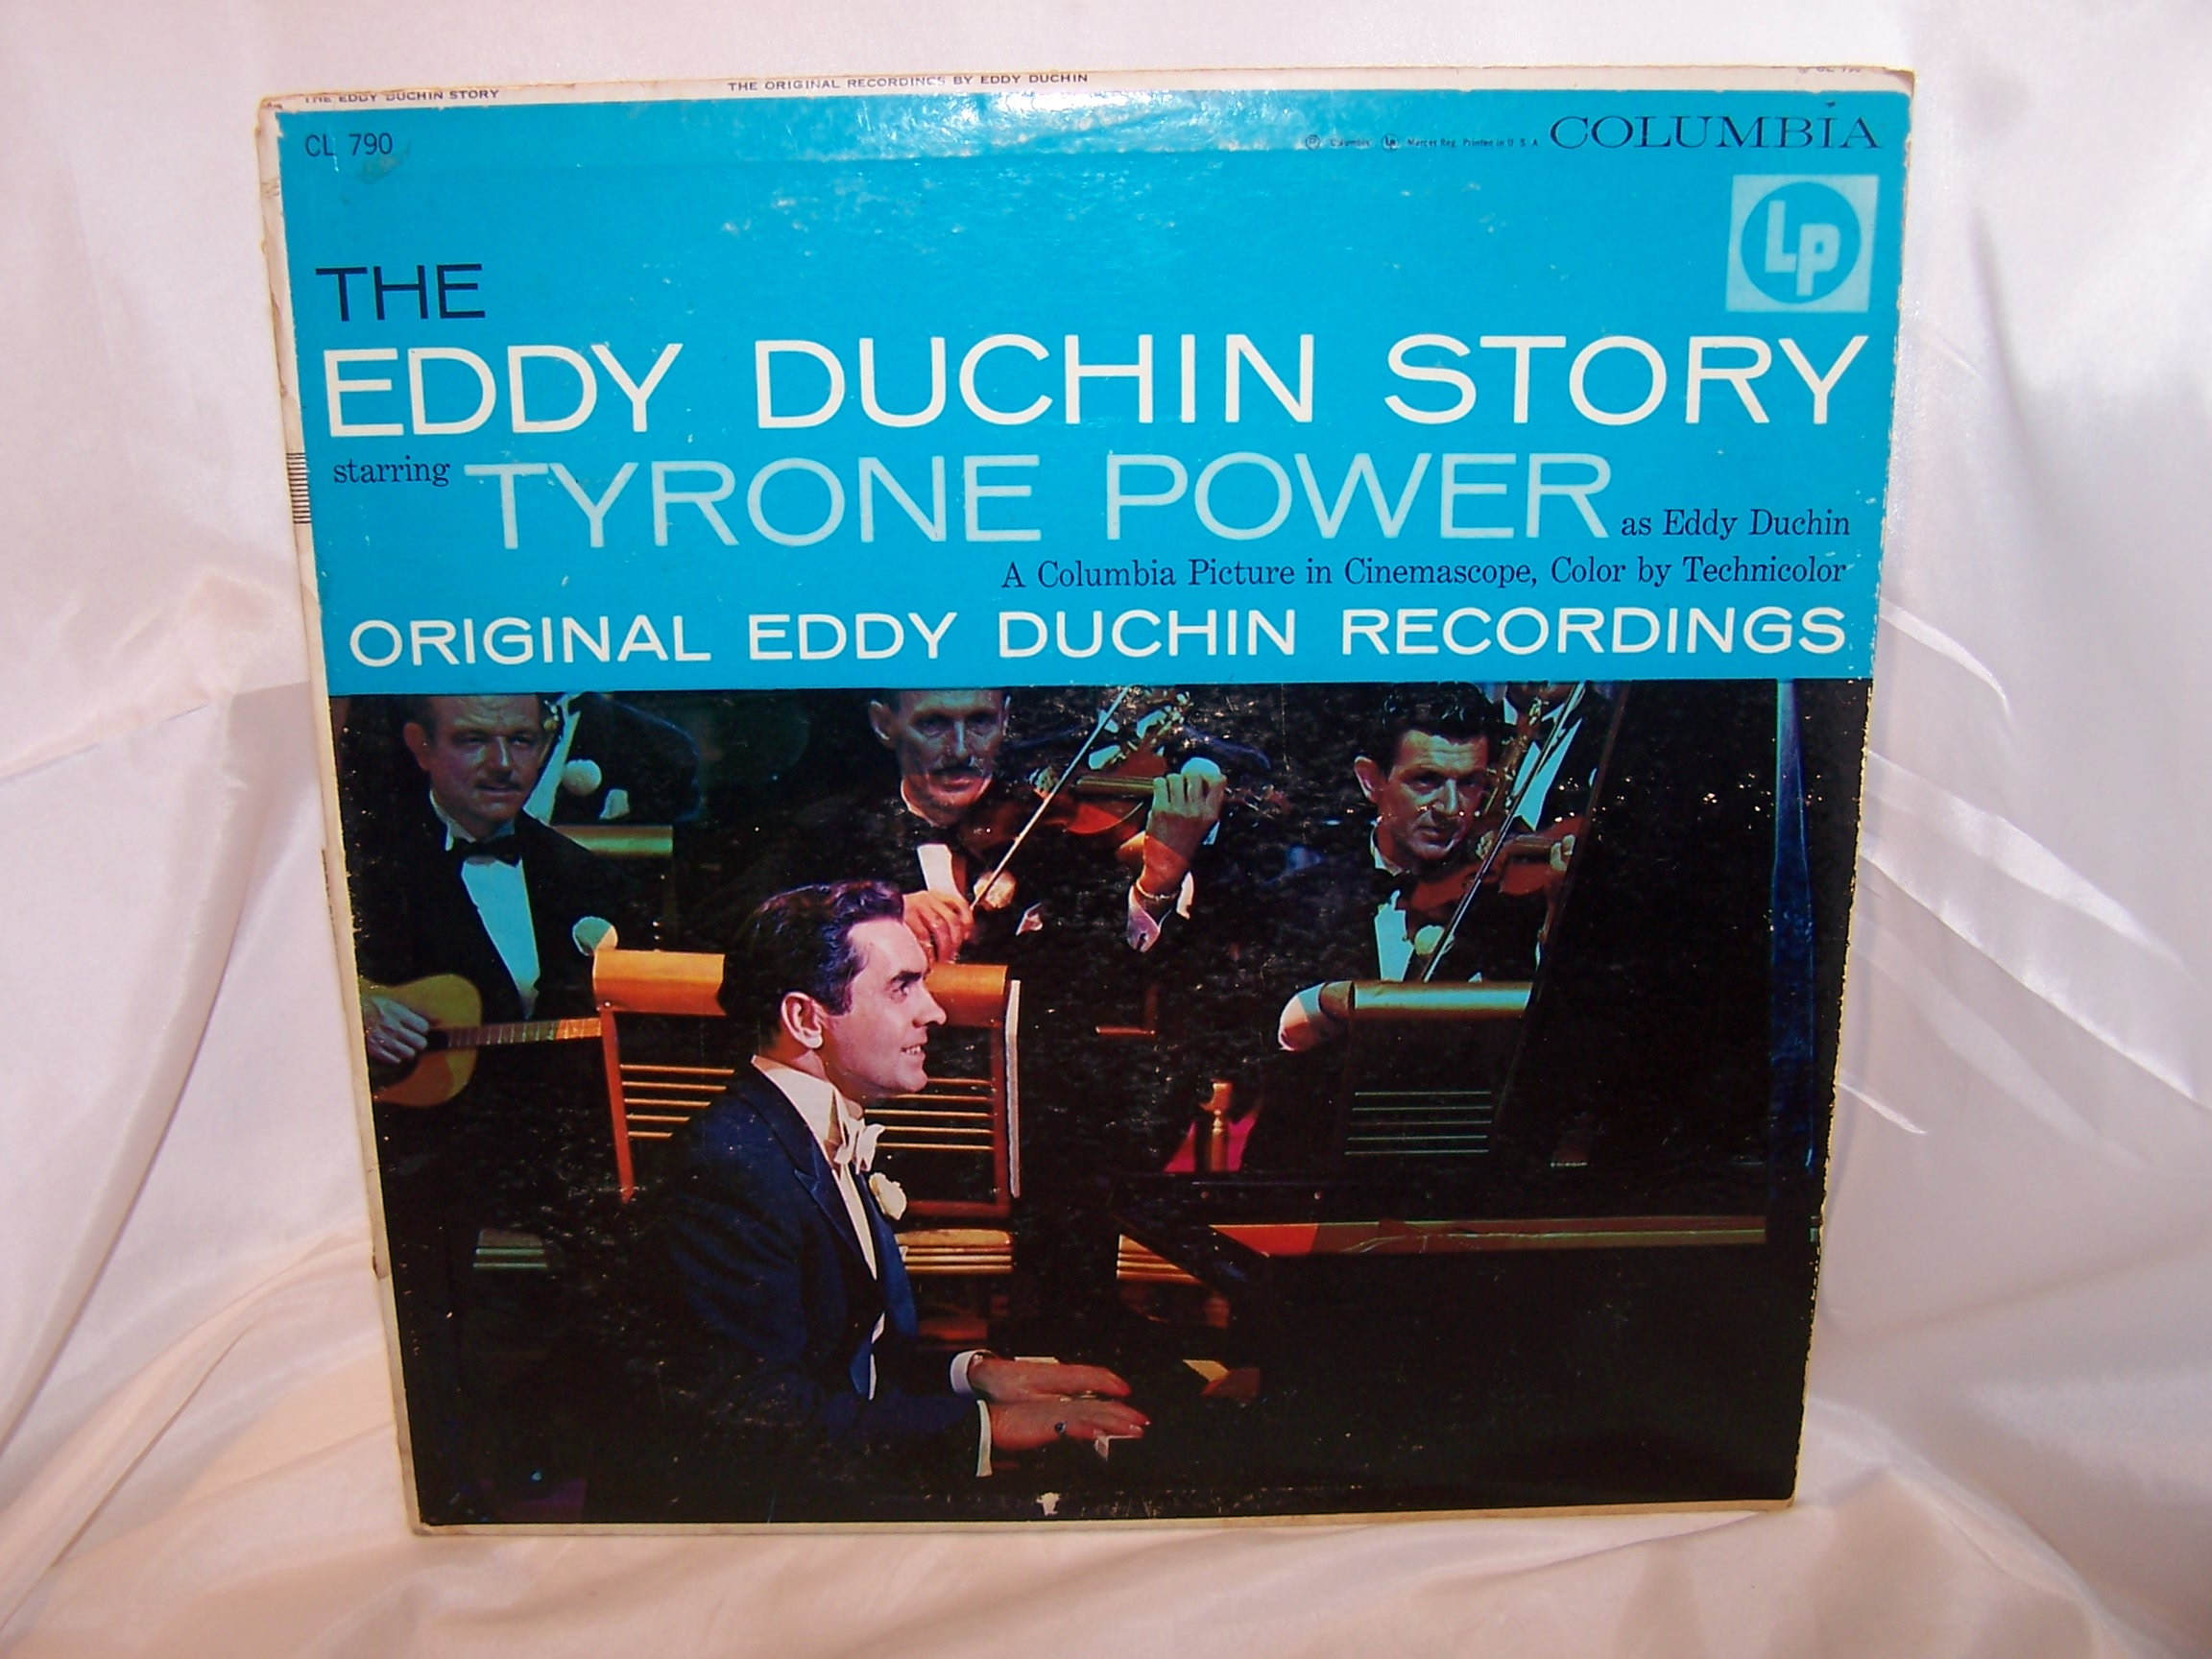 Eddy Duchin Story Record Album, Columbia, Tyrone Power